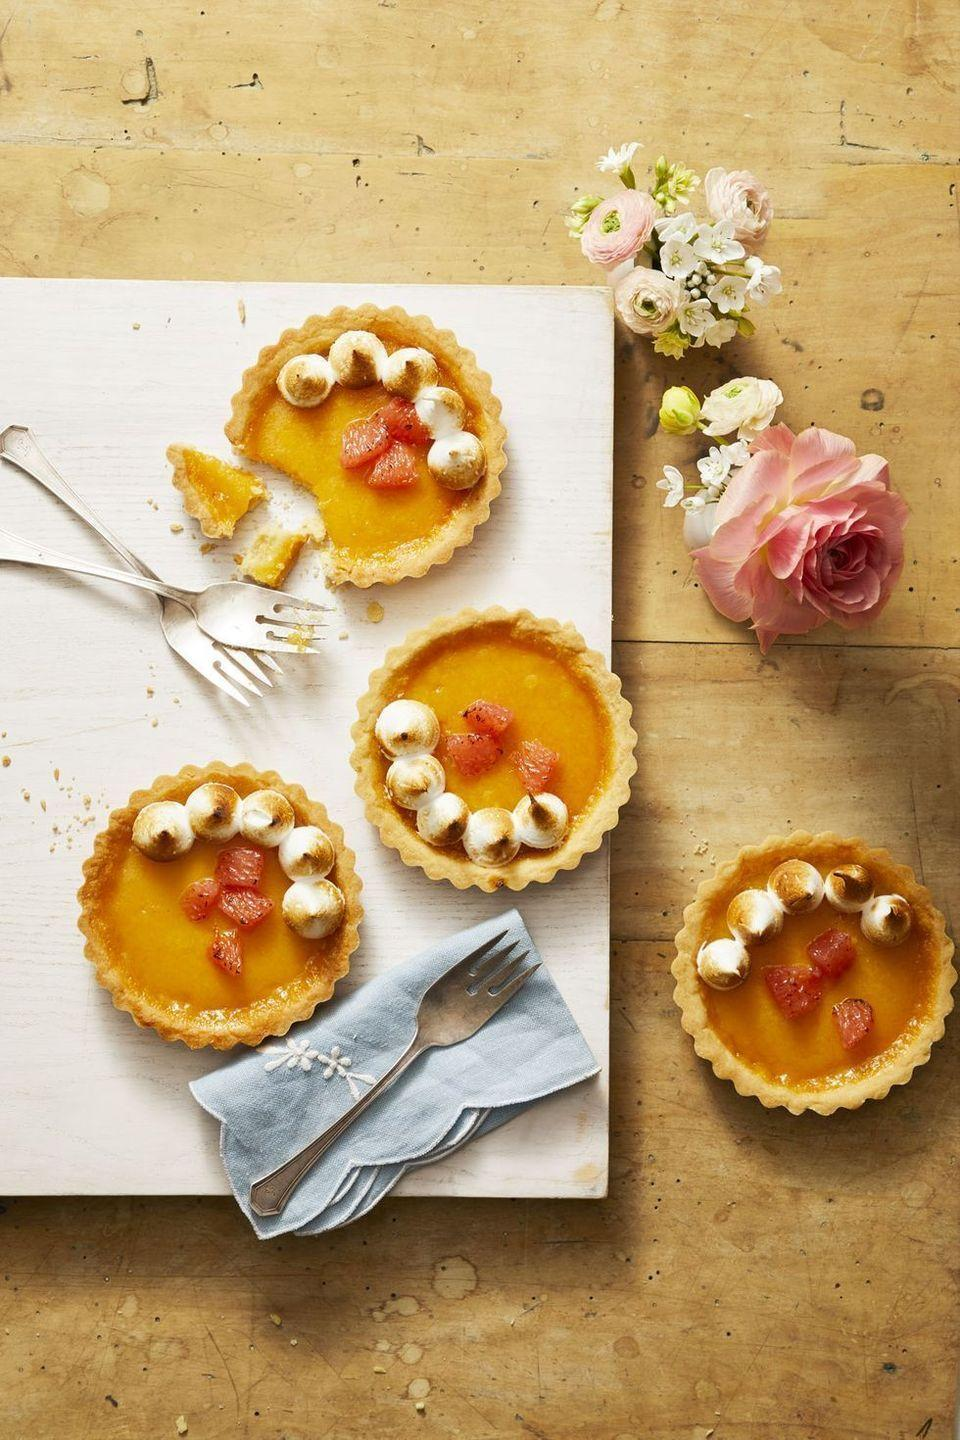 """<p>Top these citrus-infused tarts with homemade sugary-sweet meringue.</p><p><em><a href=""""https://www.goodhousekeeping.com/food-recipes/dessert/a26767705/ruby-red-grapefruit-tartlets-recipe/"""" rel=""""nofollow noopener"""" target=""""_blank"""" data-ylk=""""slk:Get the recipe for Ruby Red Grapefruit Tartlets »"""" class=""""link rapid-noclick-resp"""">Get the recipe for Ruby Red Grapefruit Tartlets »</a></em></p>"""